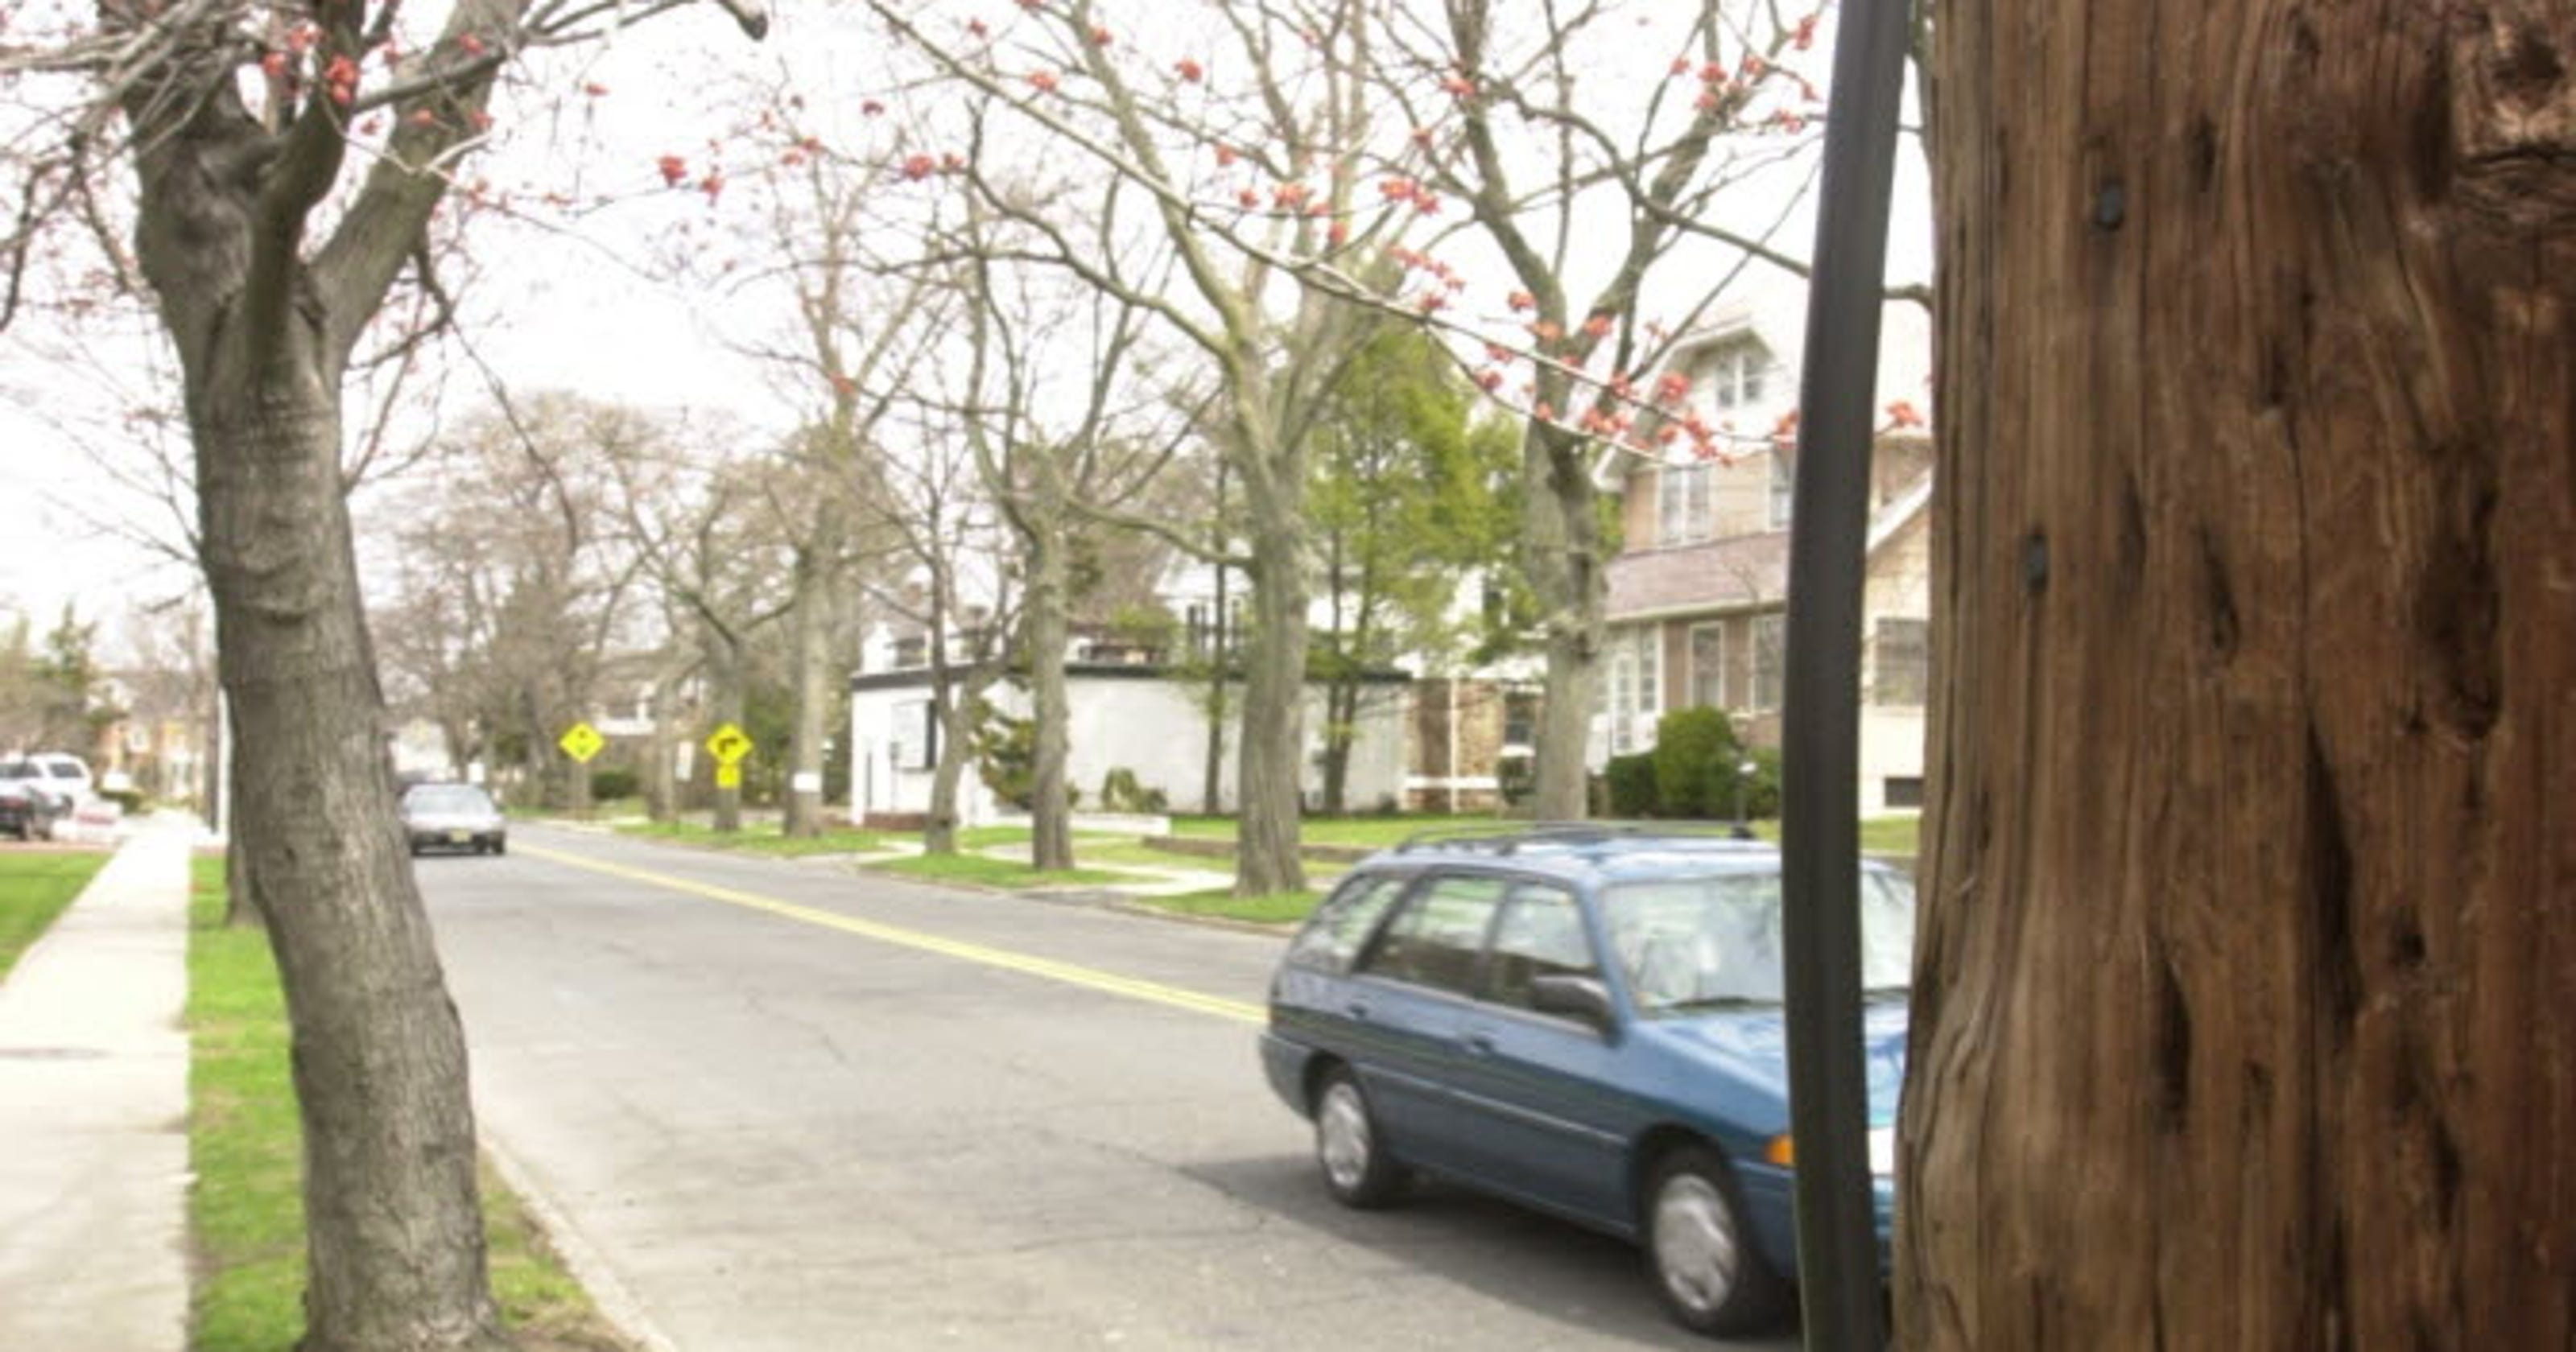 Eruv Lawsuit In Tenafly Provides A Cautionary Tale